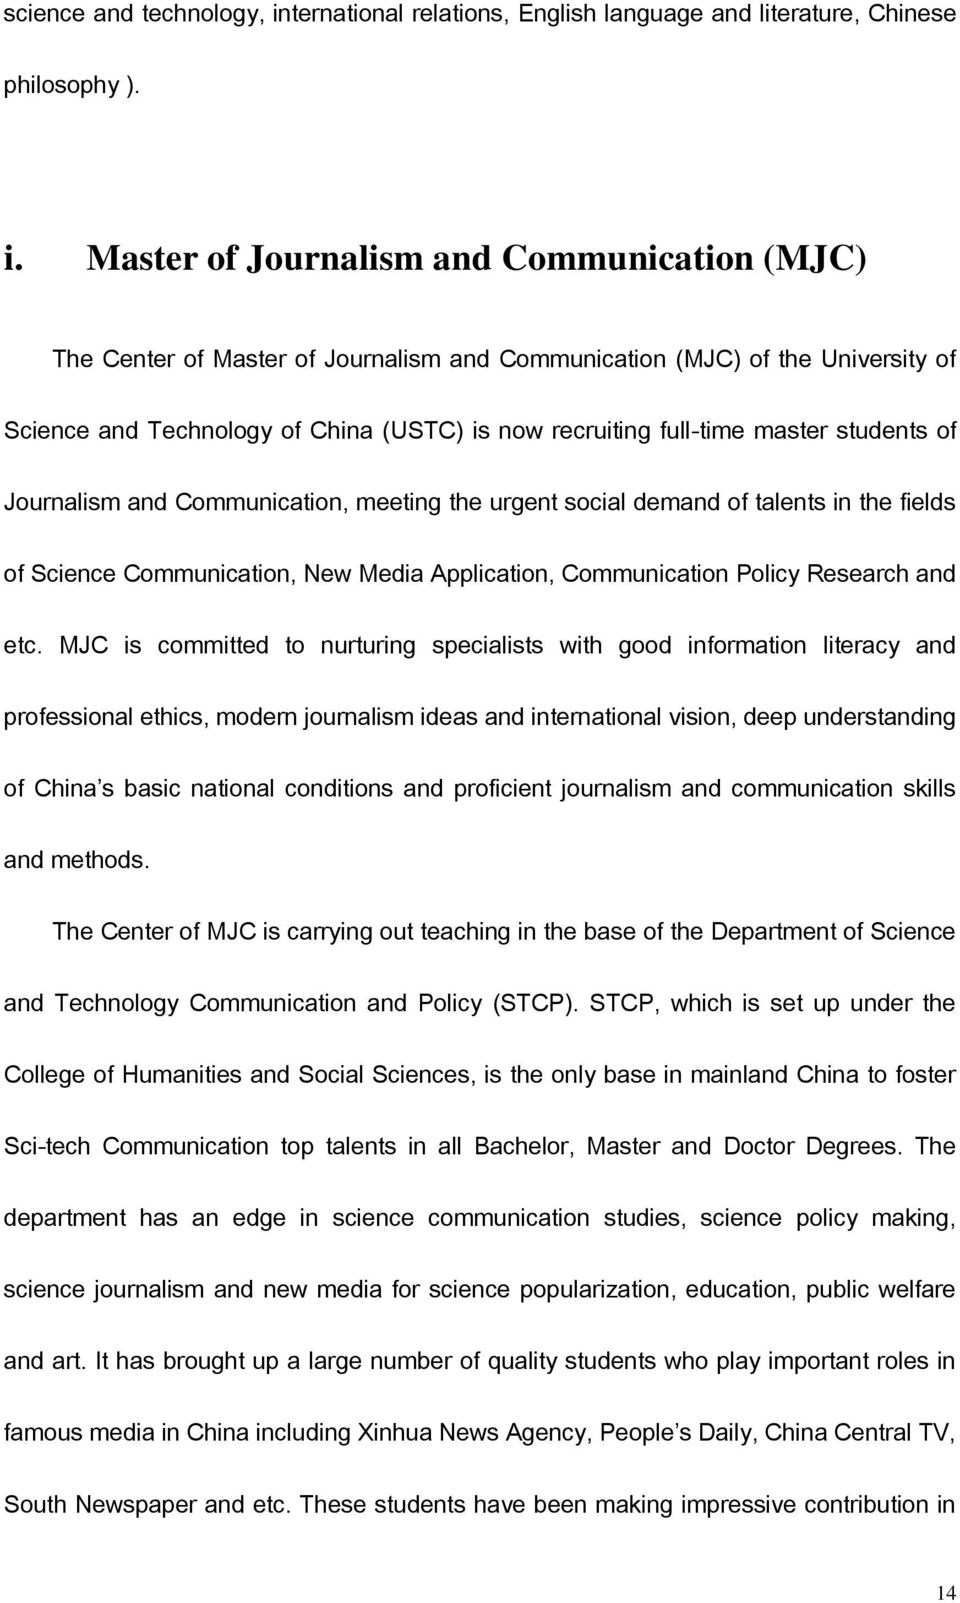 Master of Journalism and Communication (MJC) The Center of Master of Journalism and Communication (MJC) of the University of Science and Technology of China (USTC) is now recruiting full-time master